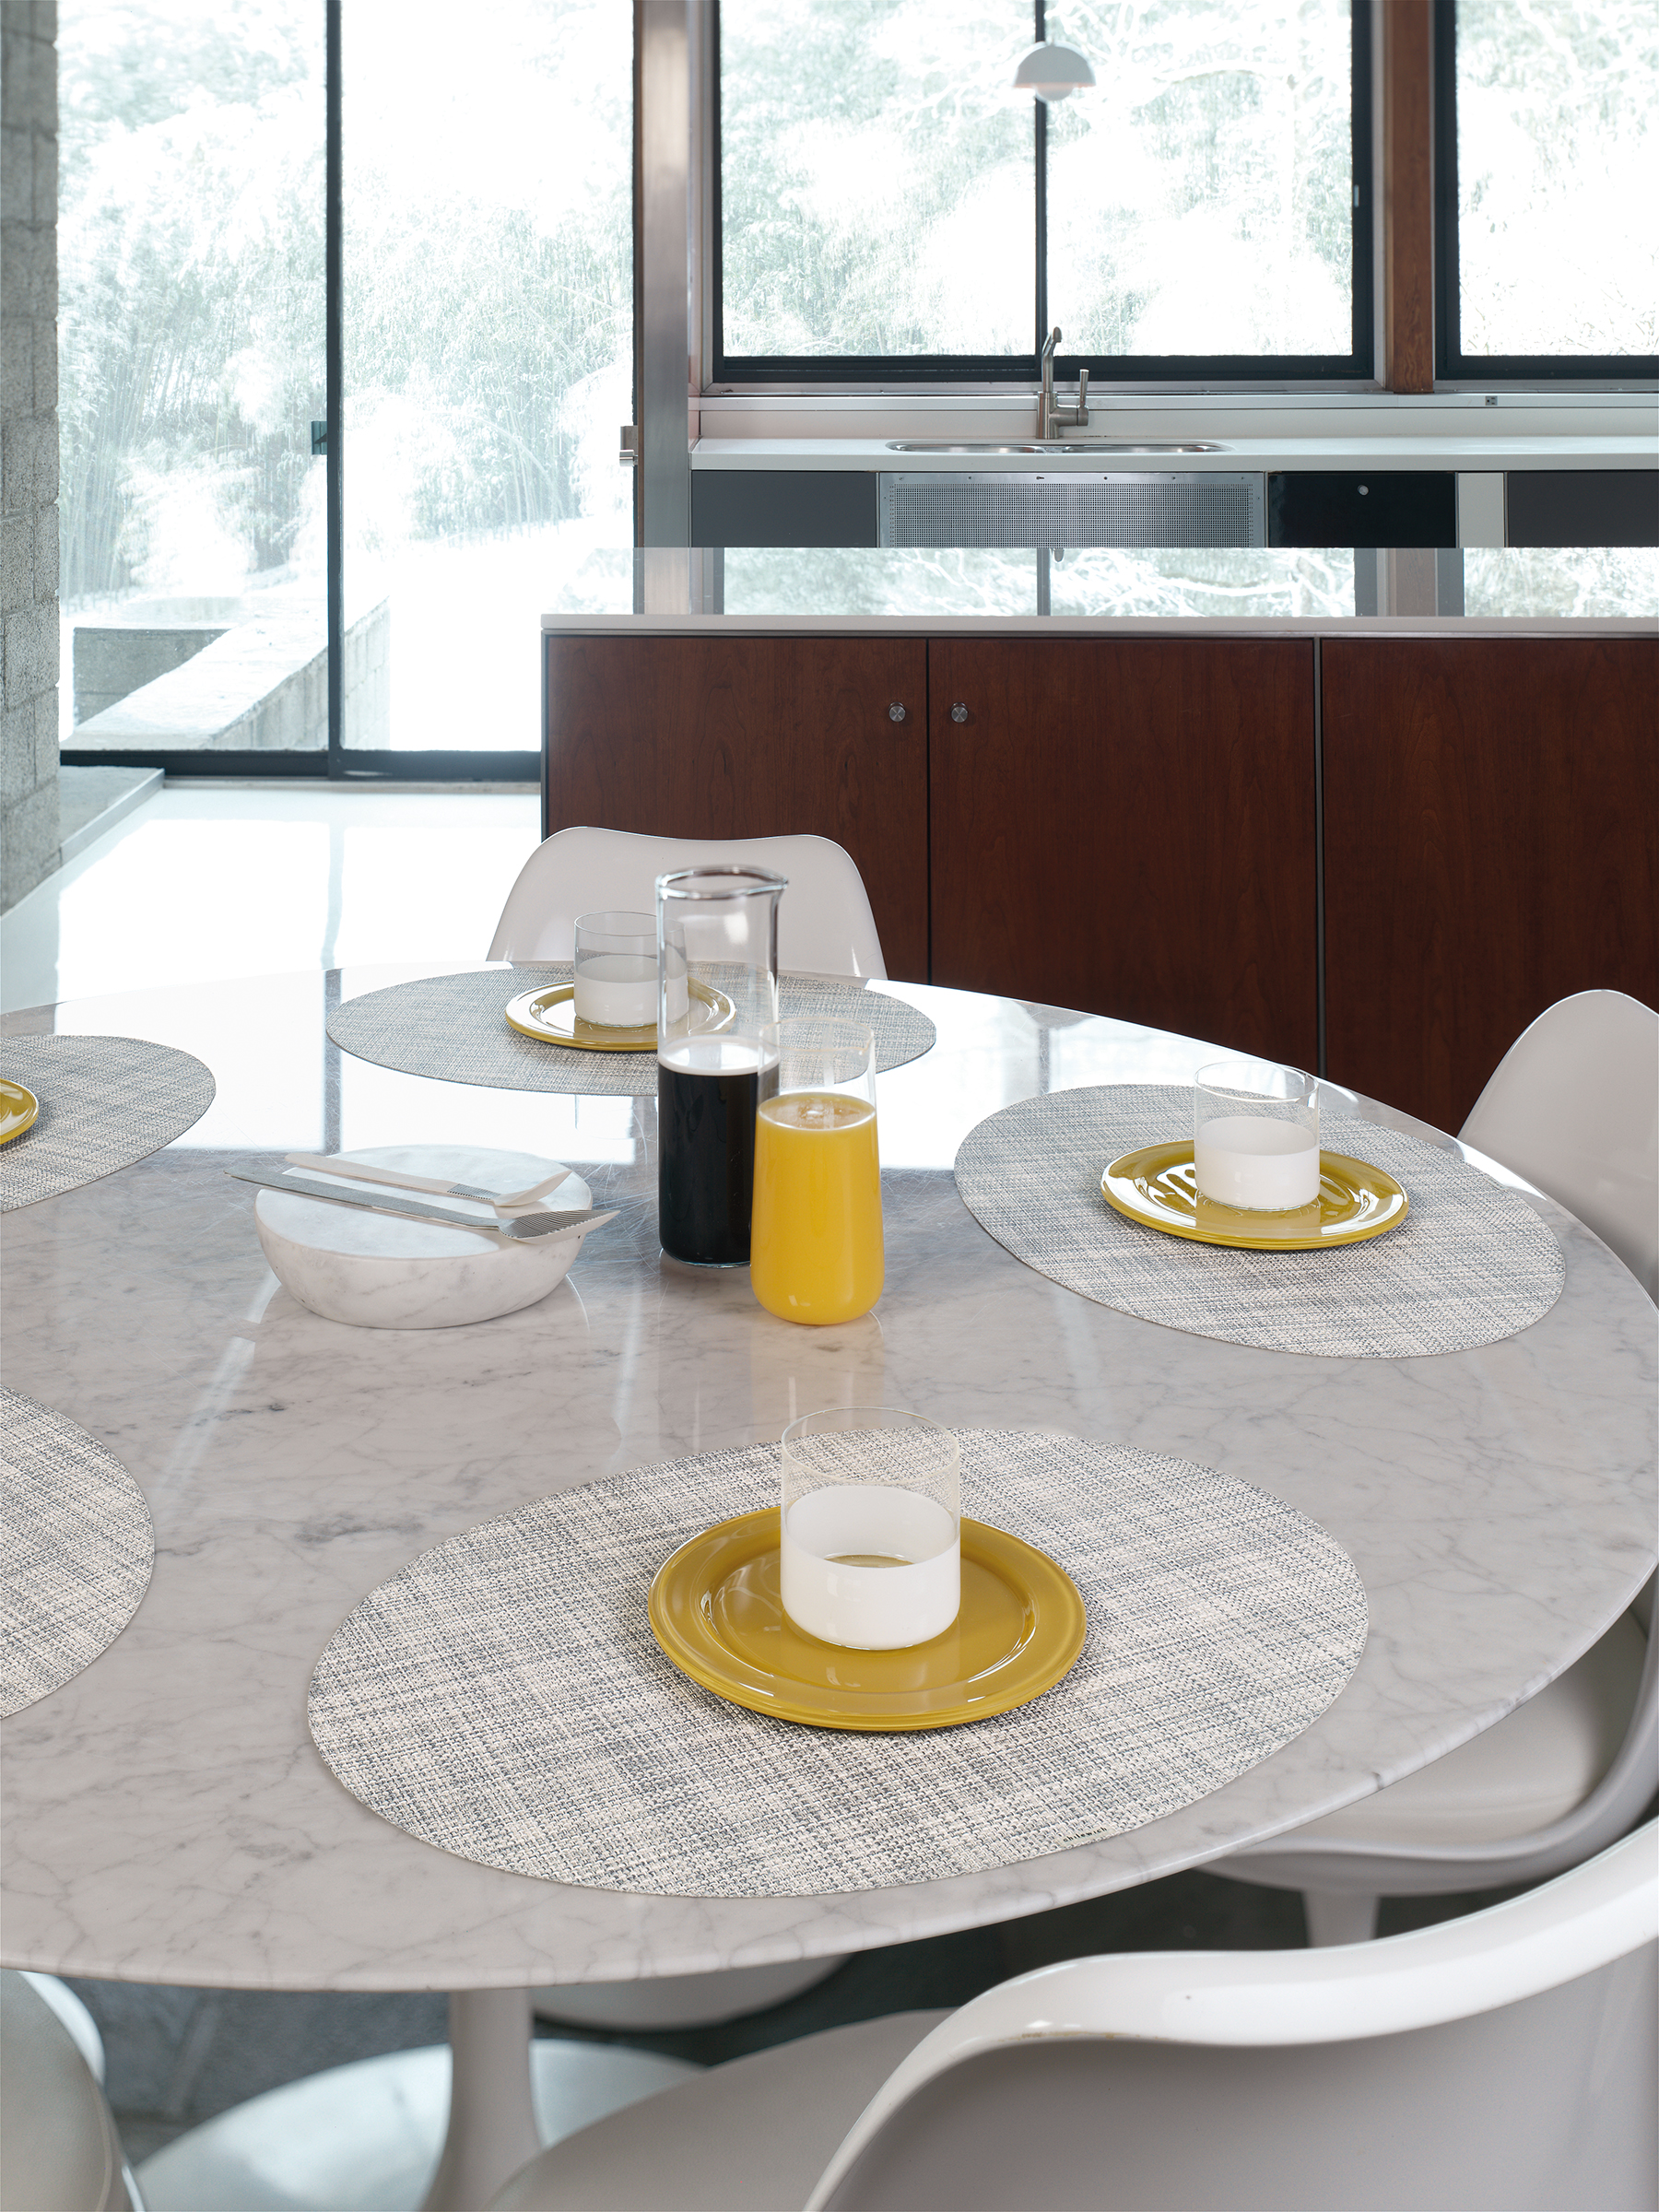 Chilewich Mini Basketweave placemats in mist_photo by Victor Schrager.jpg